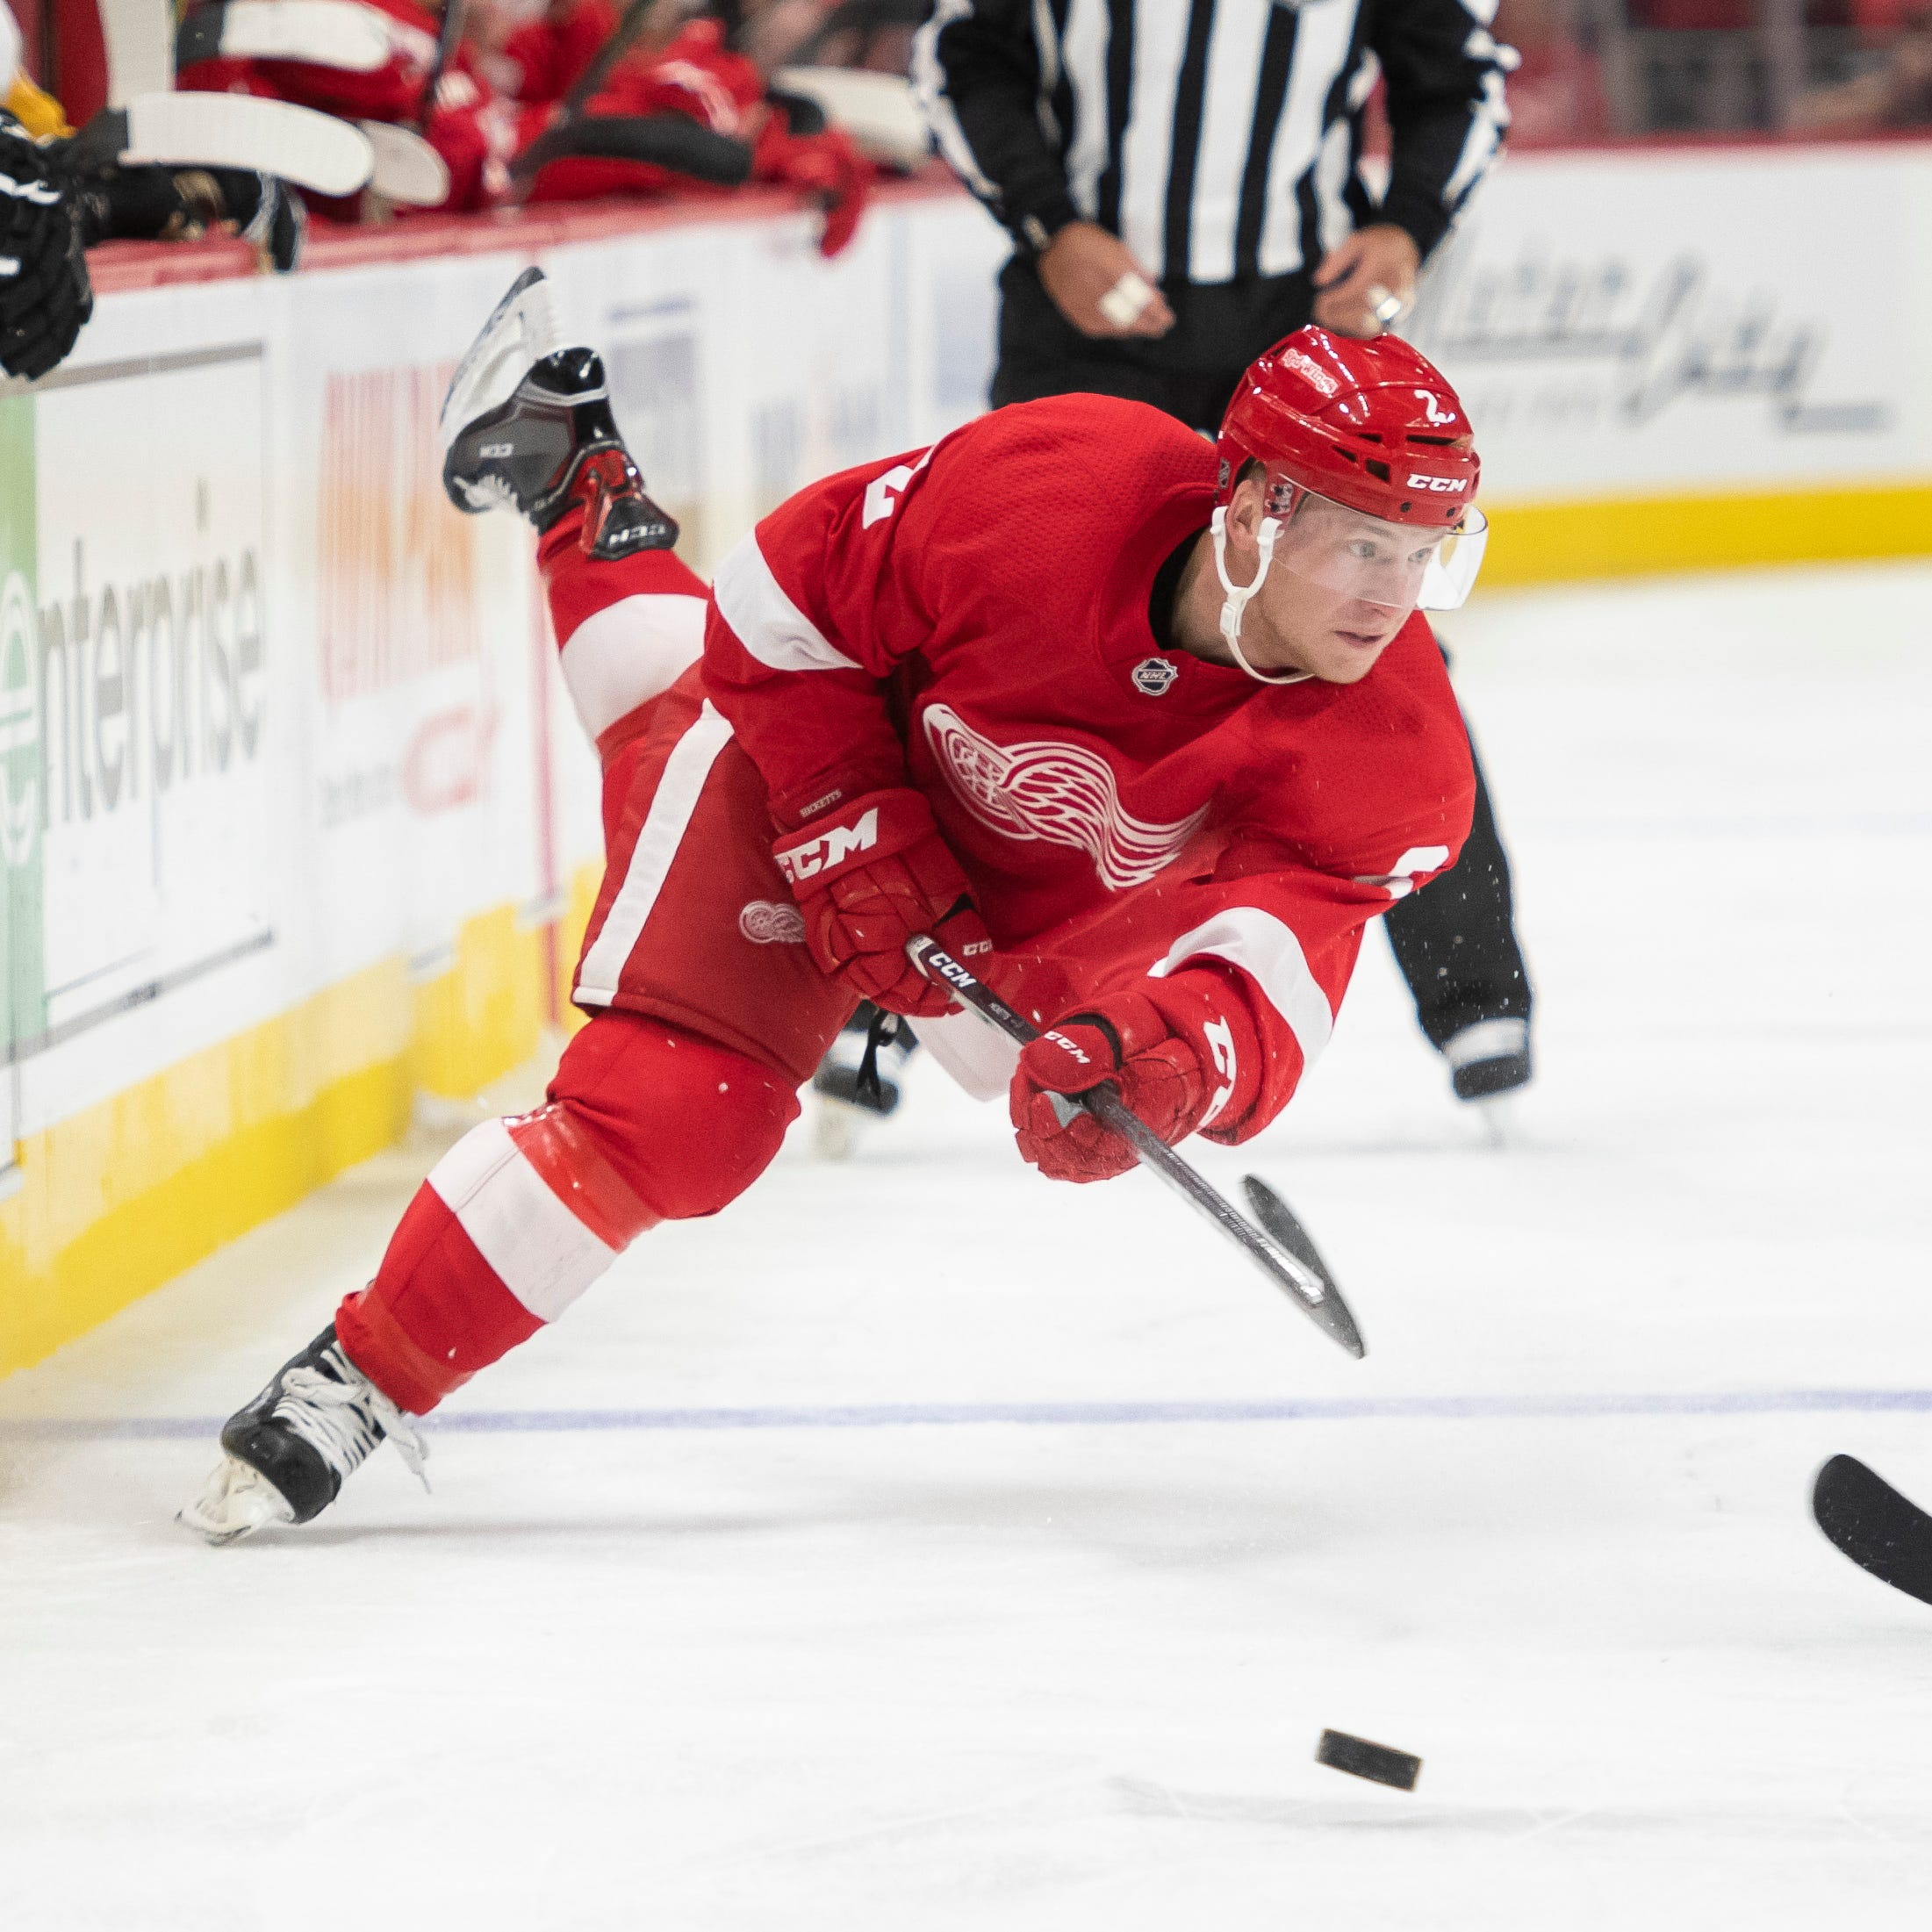 Joe Hicketts excited about another opportunity with Red Wings